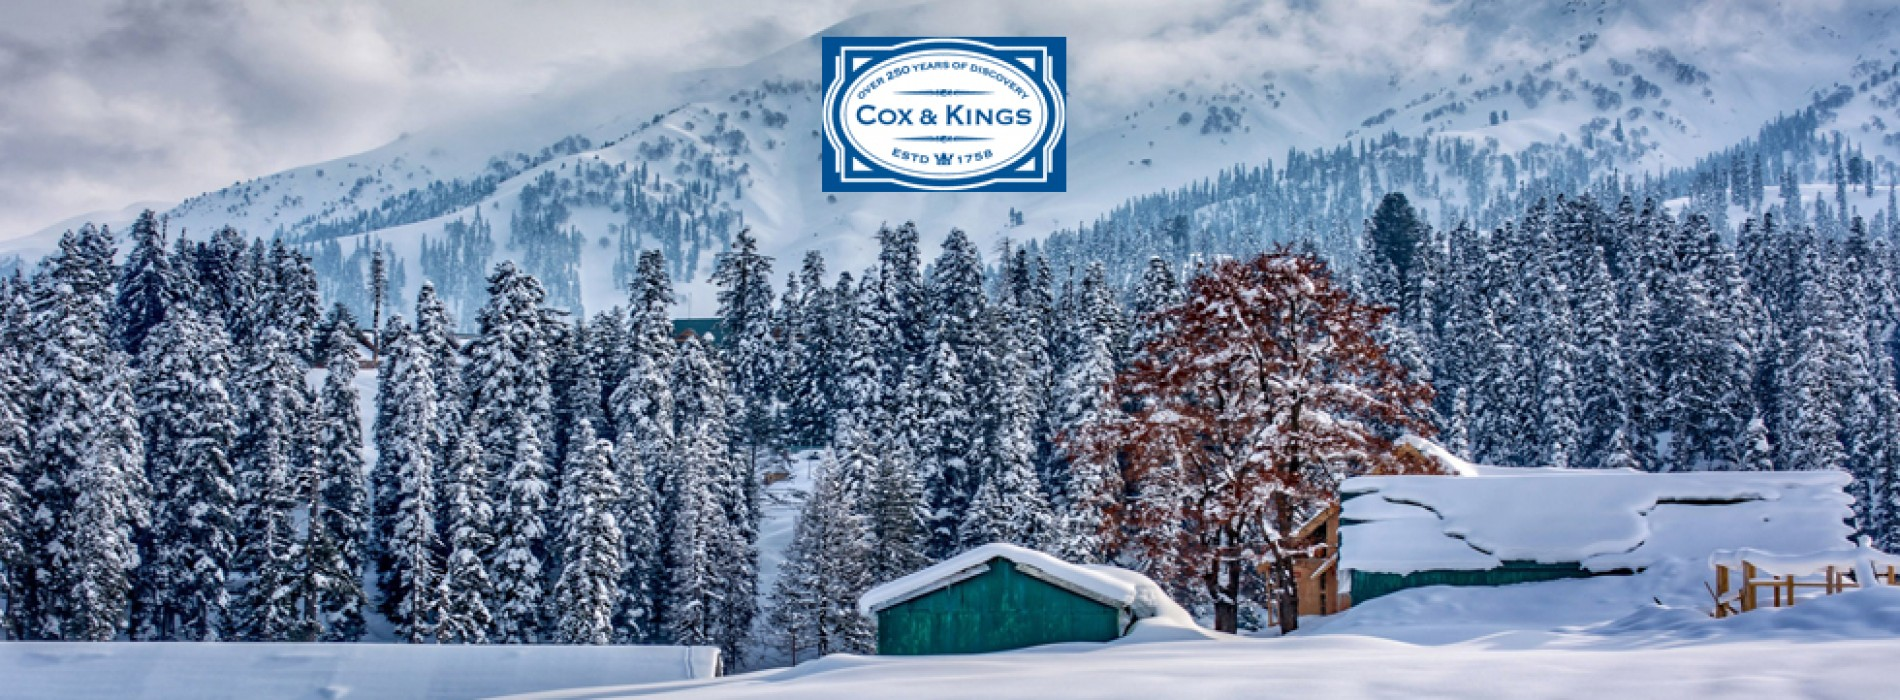 Director Tourism Kashmir launches Cox & Kings' 'Free Fly to Kashmir' Holiday